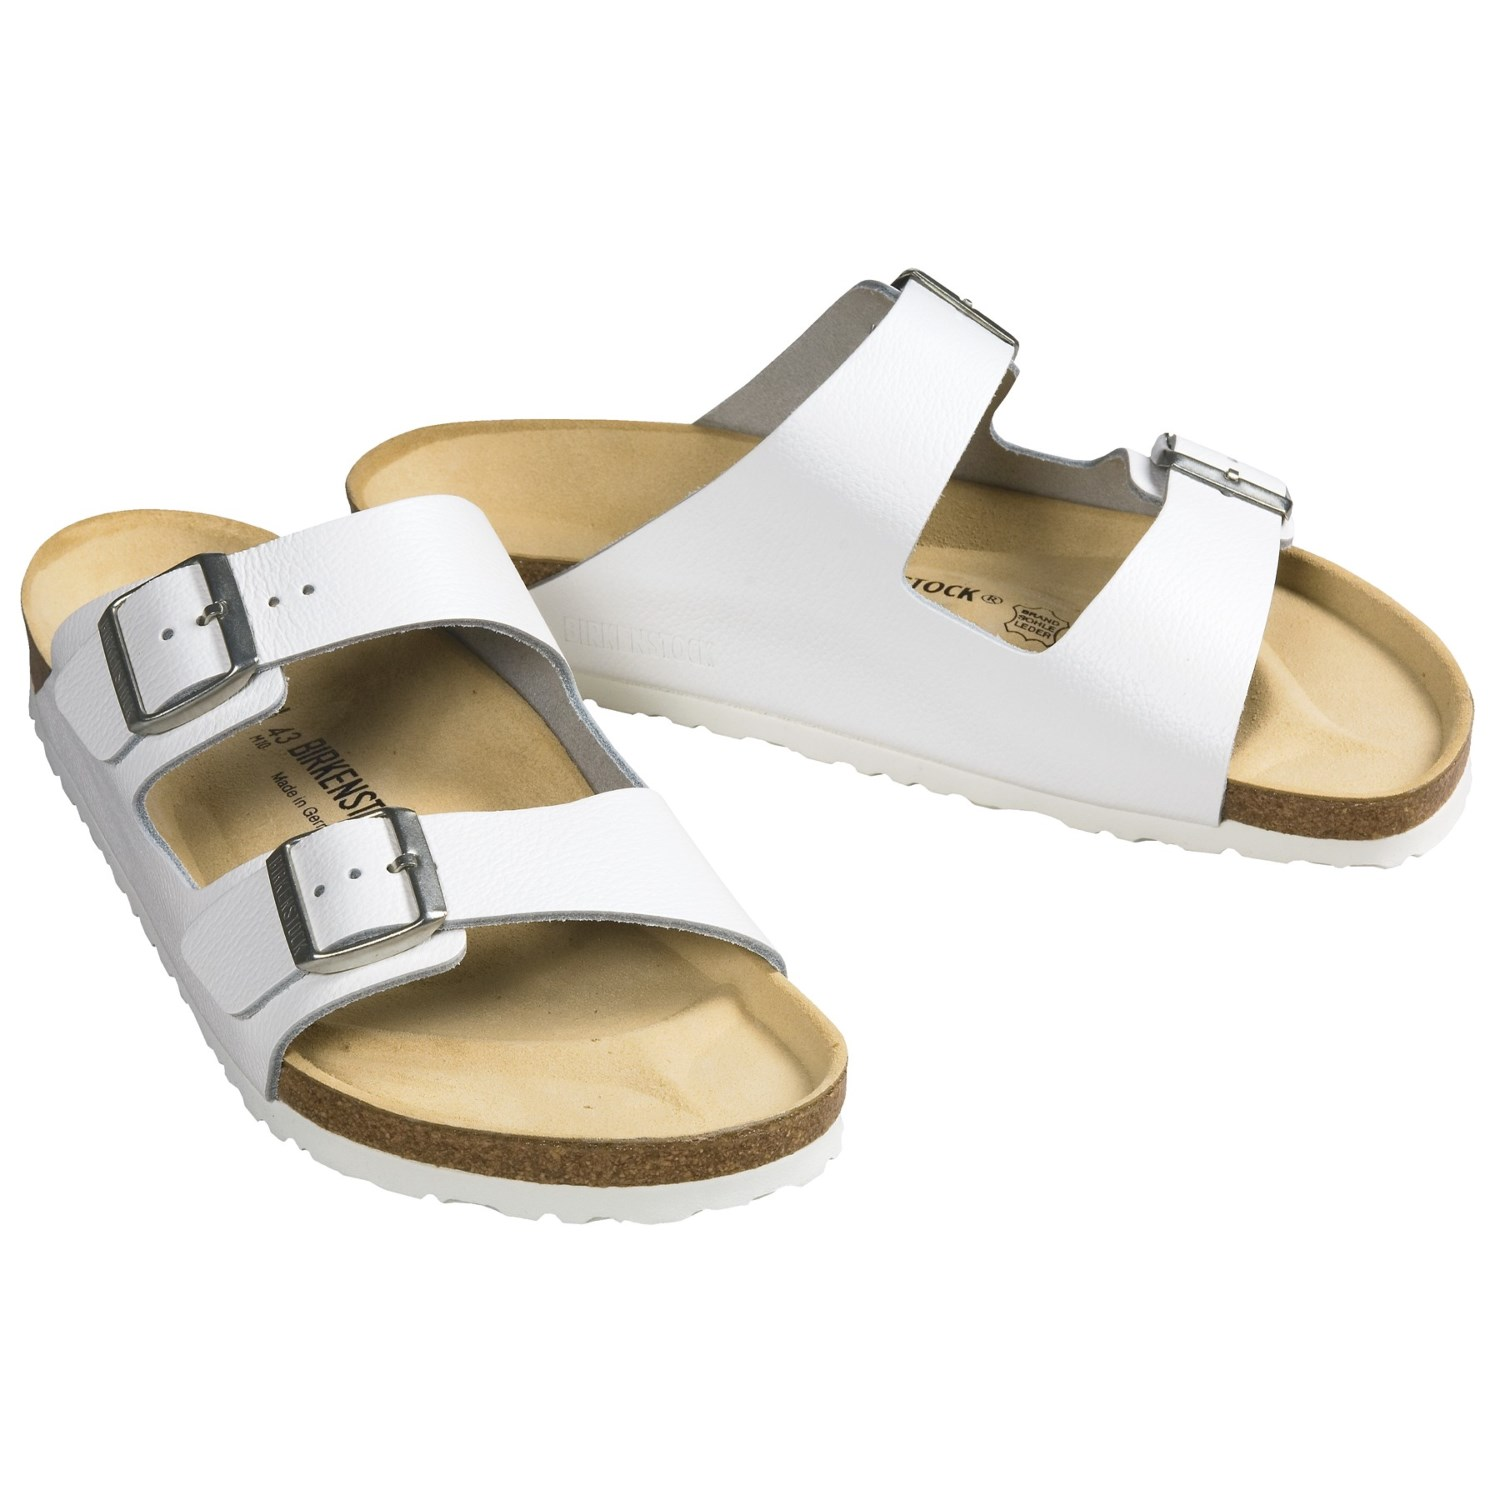 Innovative You Could Call It Sustainable Comfort Birkenstock Sandals Are Designed And Sized To Provide A Roomy Fit Allowing Your Toes And Feet To Wiggle And Be Free With Features Like A Contoured Cork Footbed, A Deep Heel Cup, And A Roomy Toe Box,